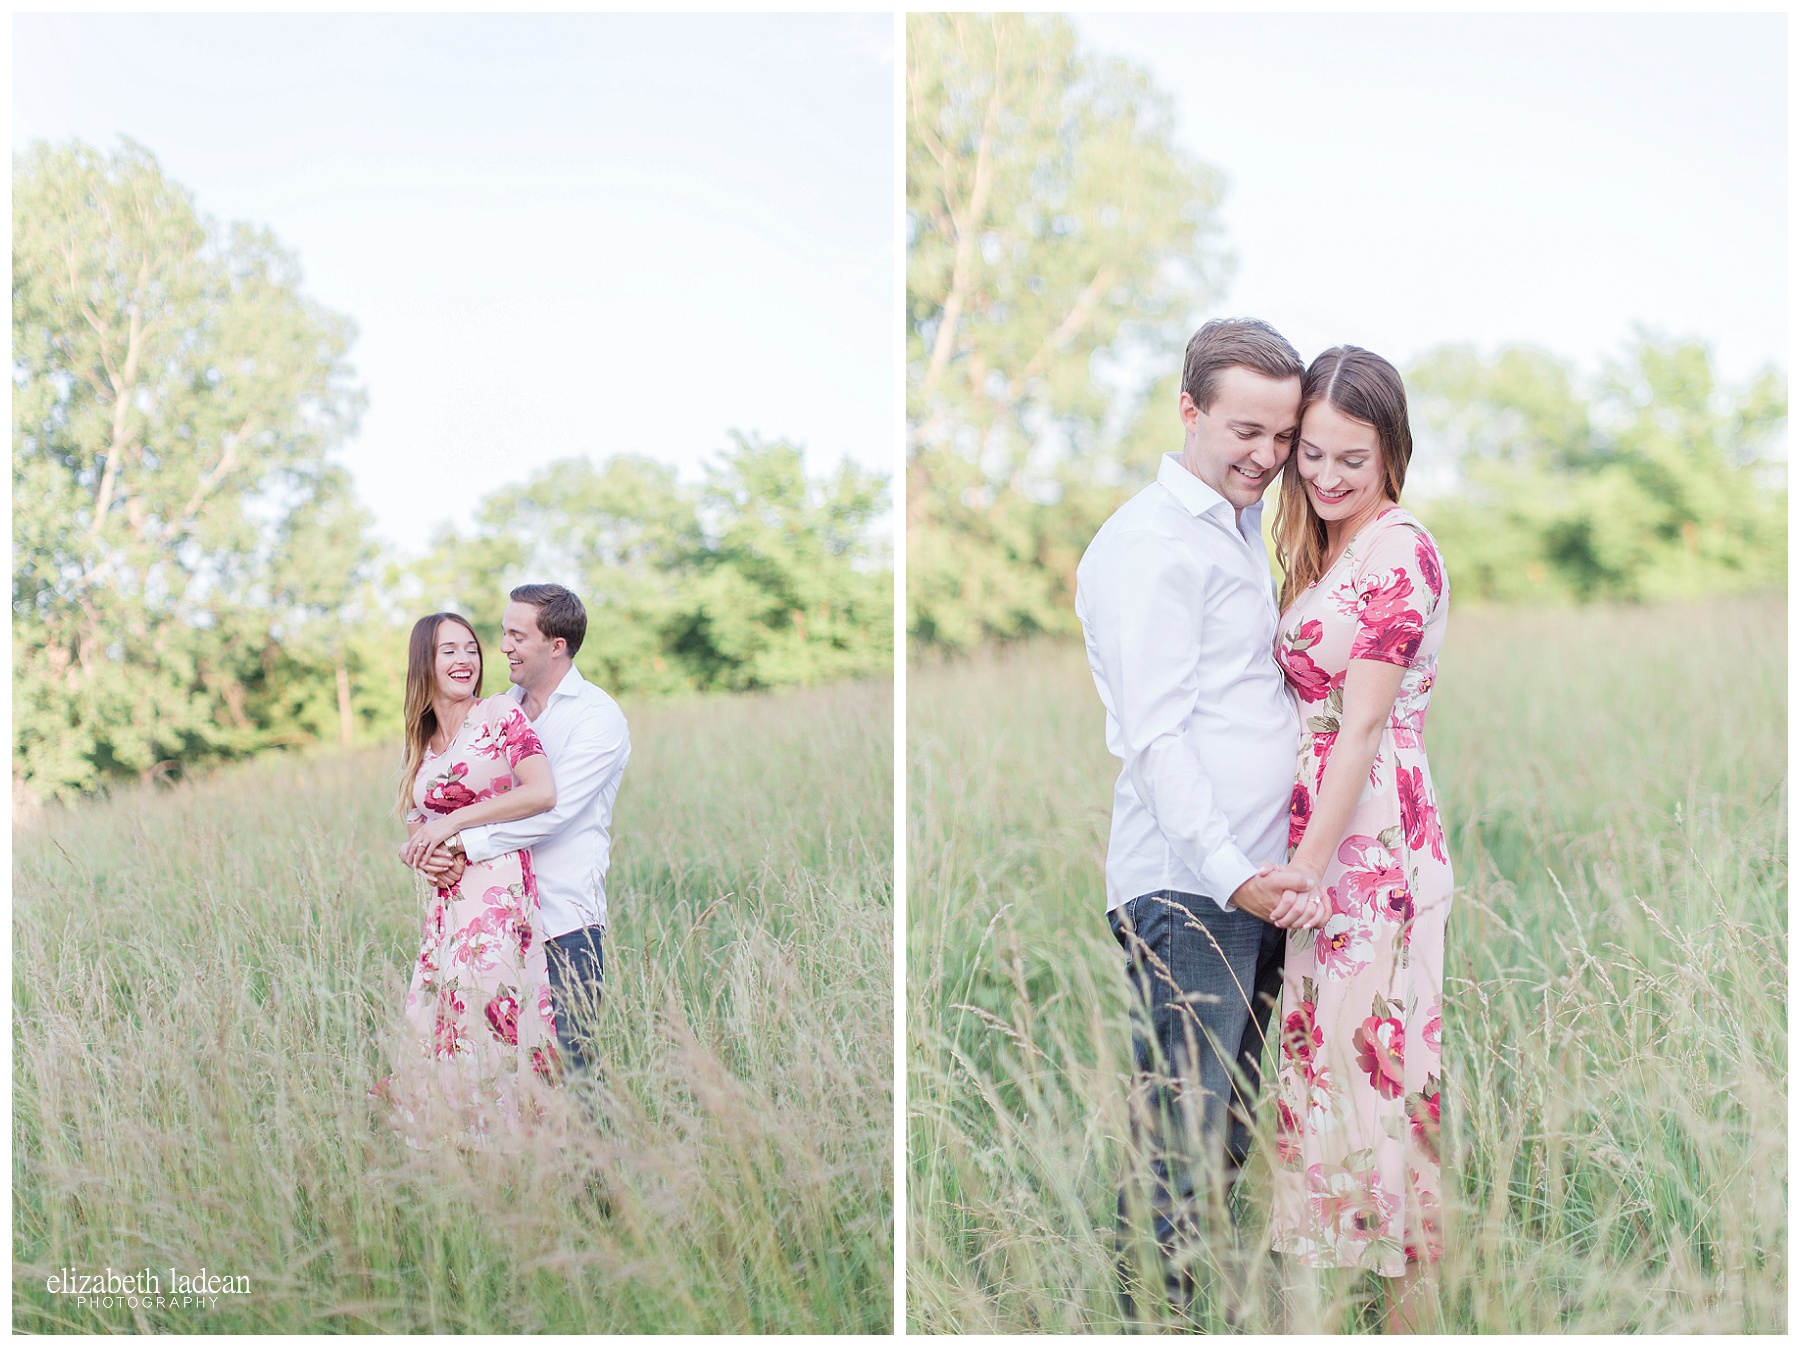 Weston-Bend-Kansas-City-Engagement-Photographer-C+A2017-Elizabeth-Ladean-Photography-photo_1162.jpg